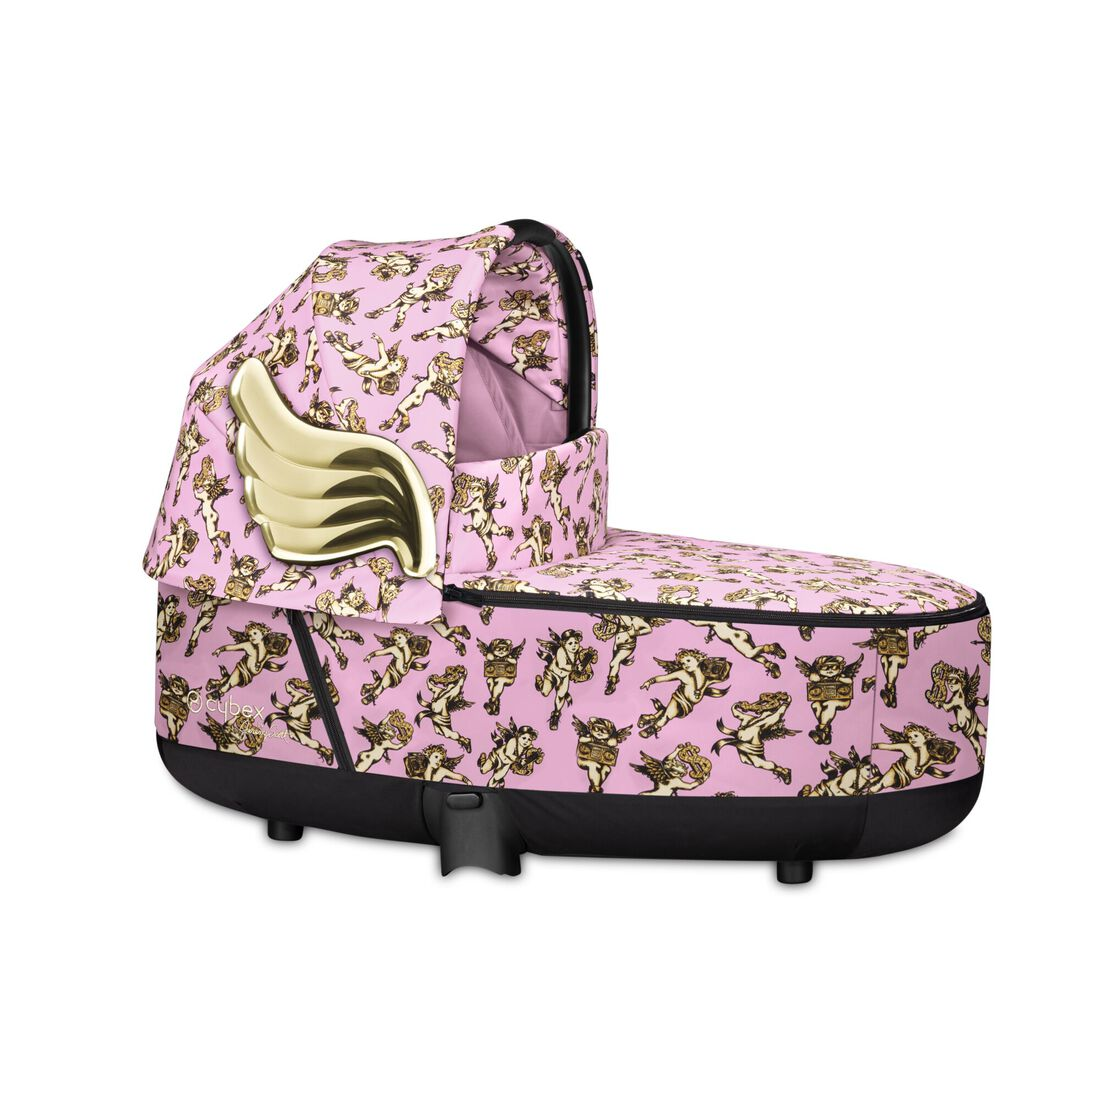 CYBEX Priam Lux Carry Cot - Cherubs Pink in Cherubs Pink large image number 1